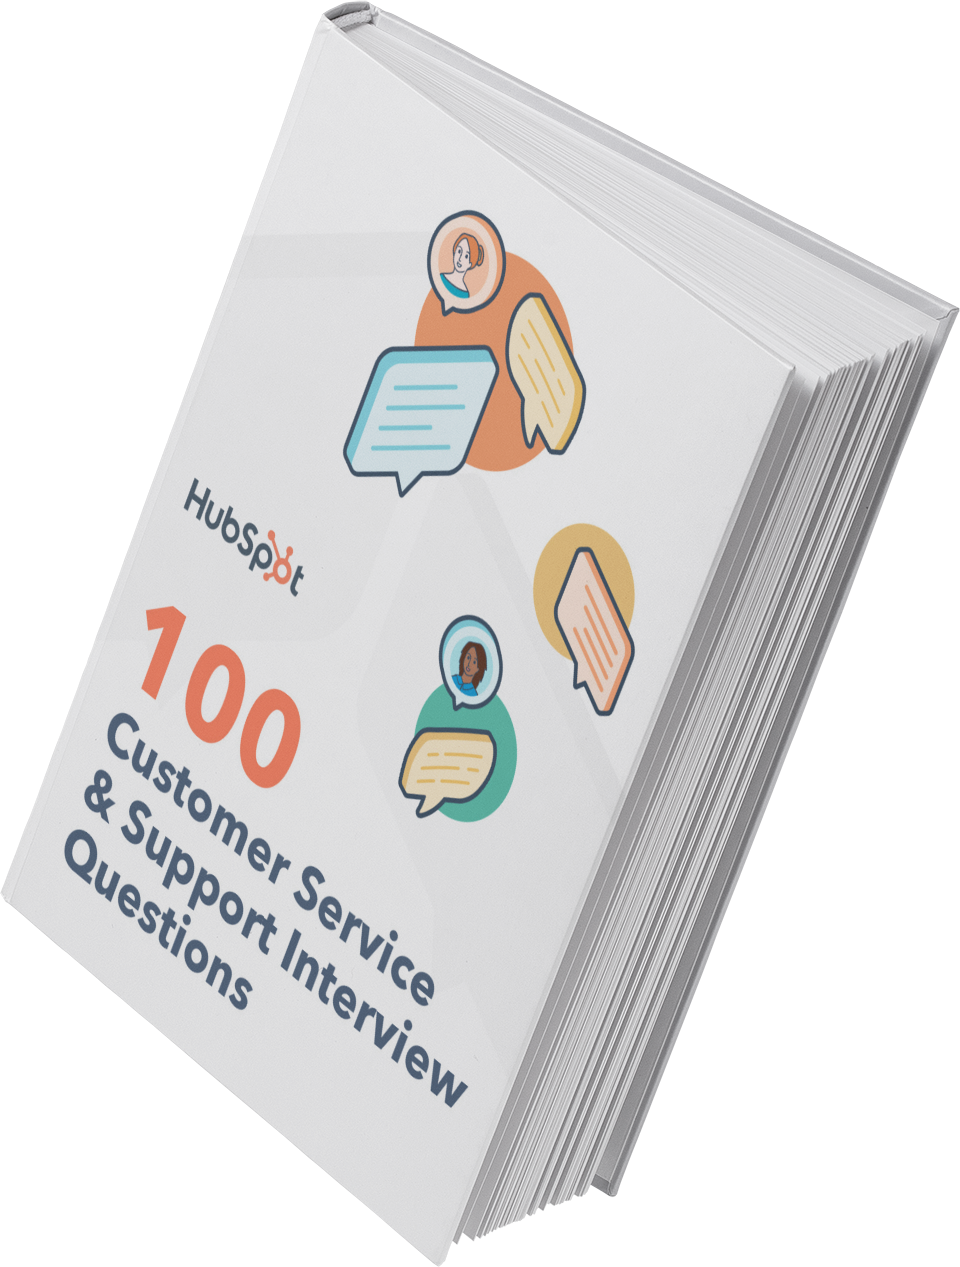 100 Customer Service & Support Interview Questions